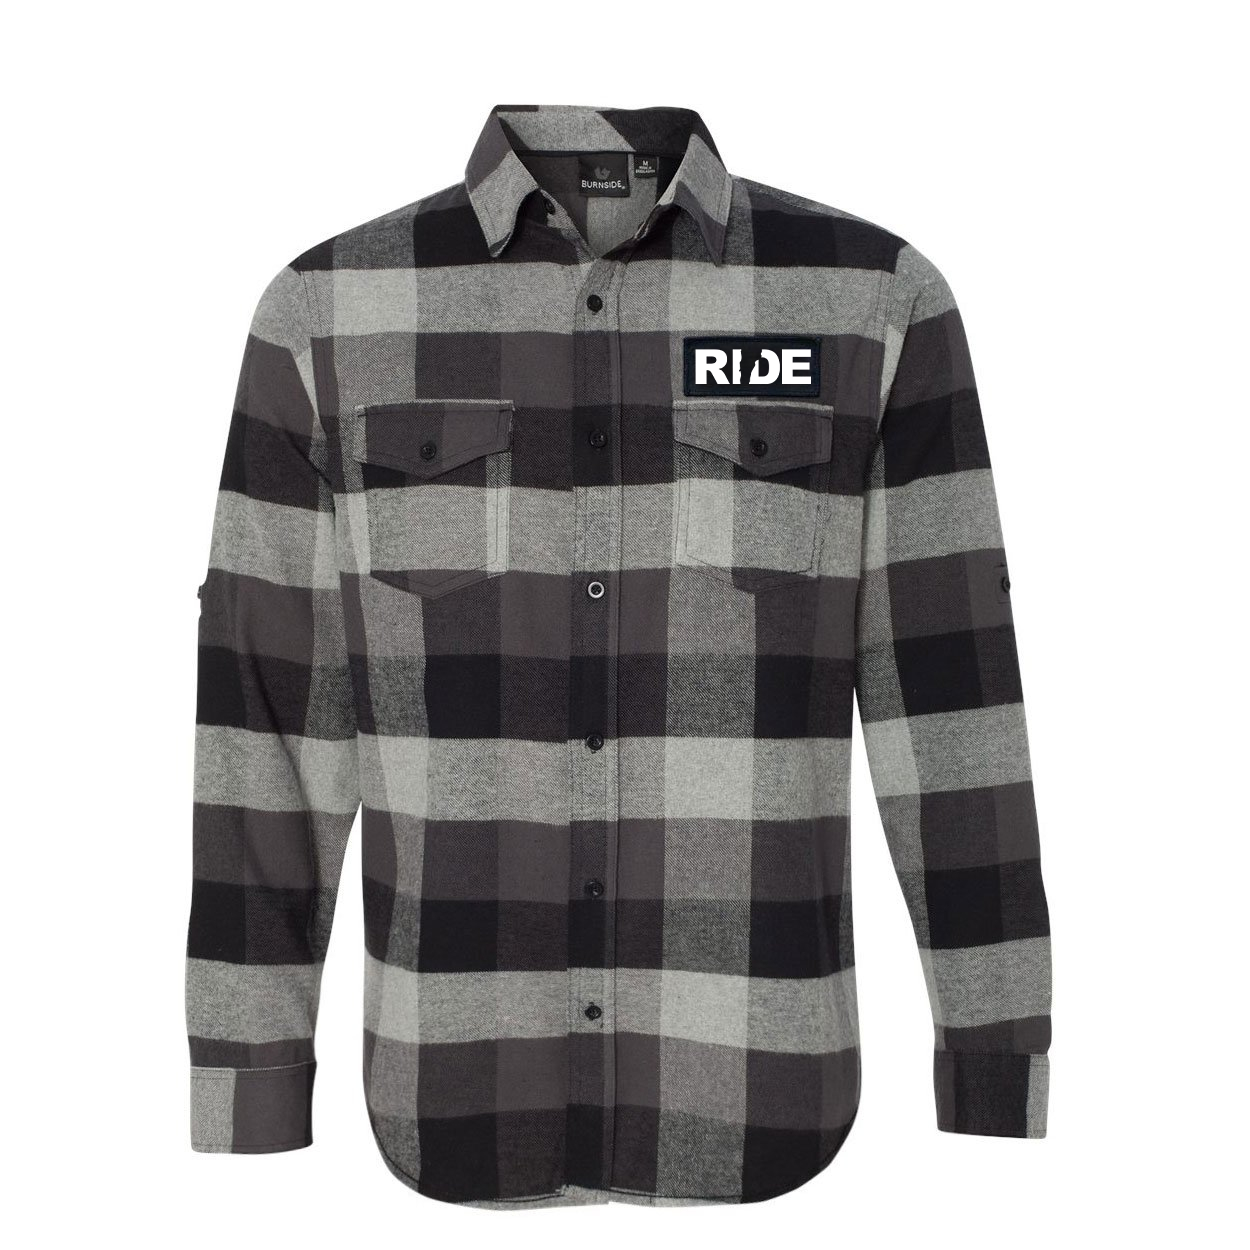 Ride Vermont Classic Unisex Long Sleeve Woven Patch Flannel Shirt Black/Gray (White Logo)